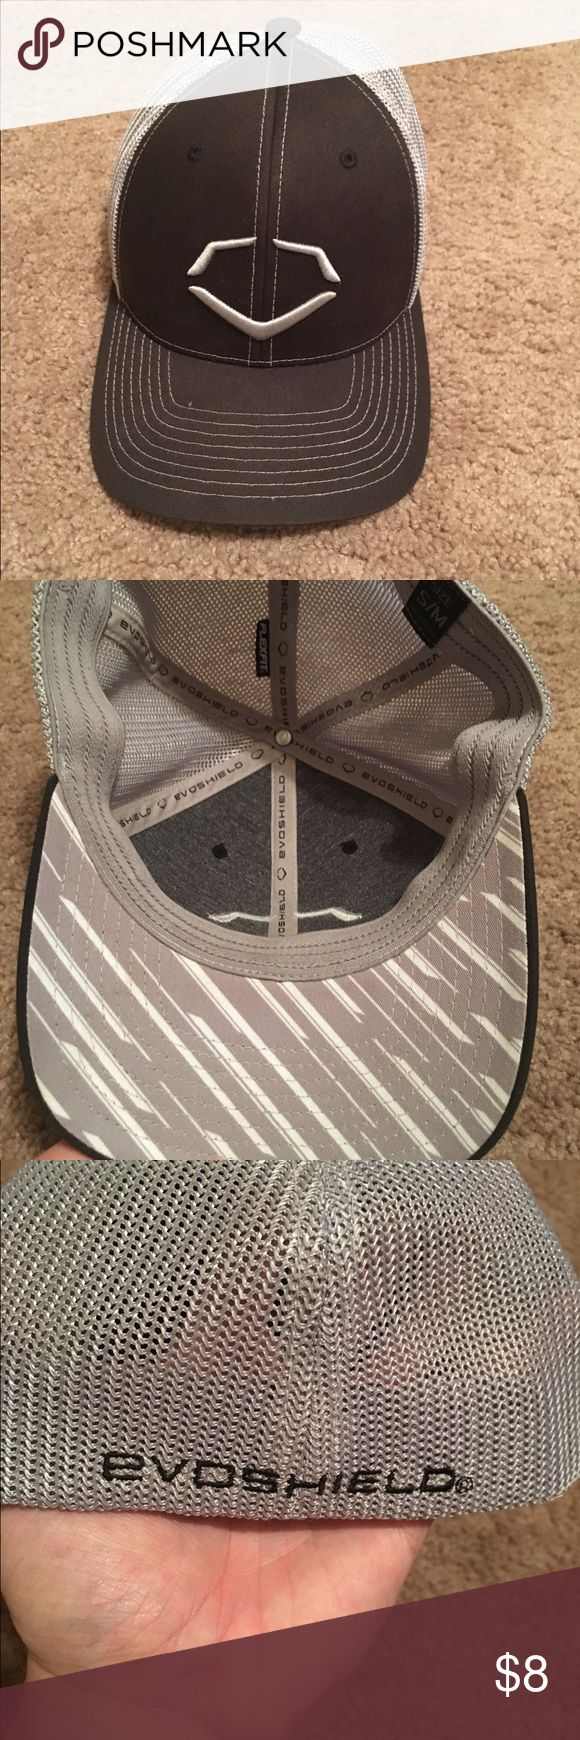 Evoshield Baseball Hat Won about 5 or 6 times. It has one small blemish on the top of the hat but it is very comfortable and breathes well. Evoshield Accessories Hats